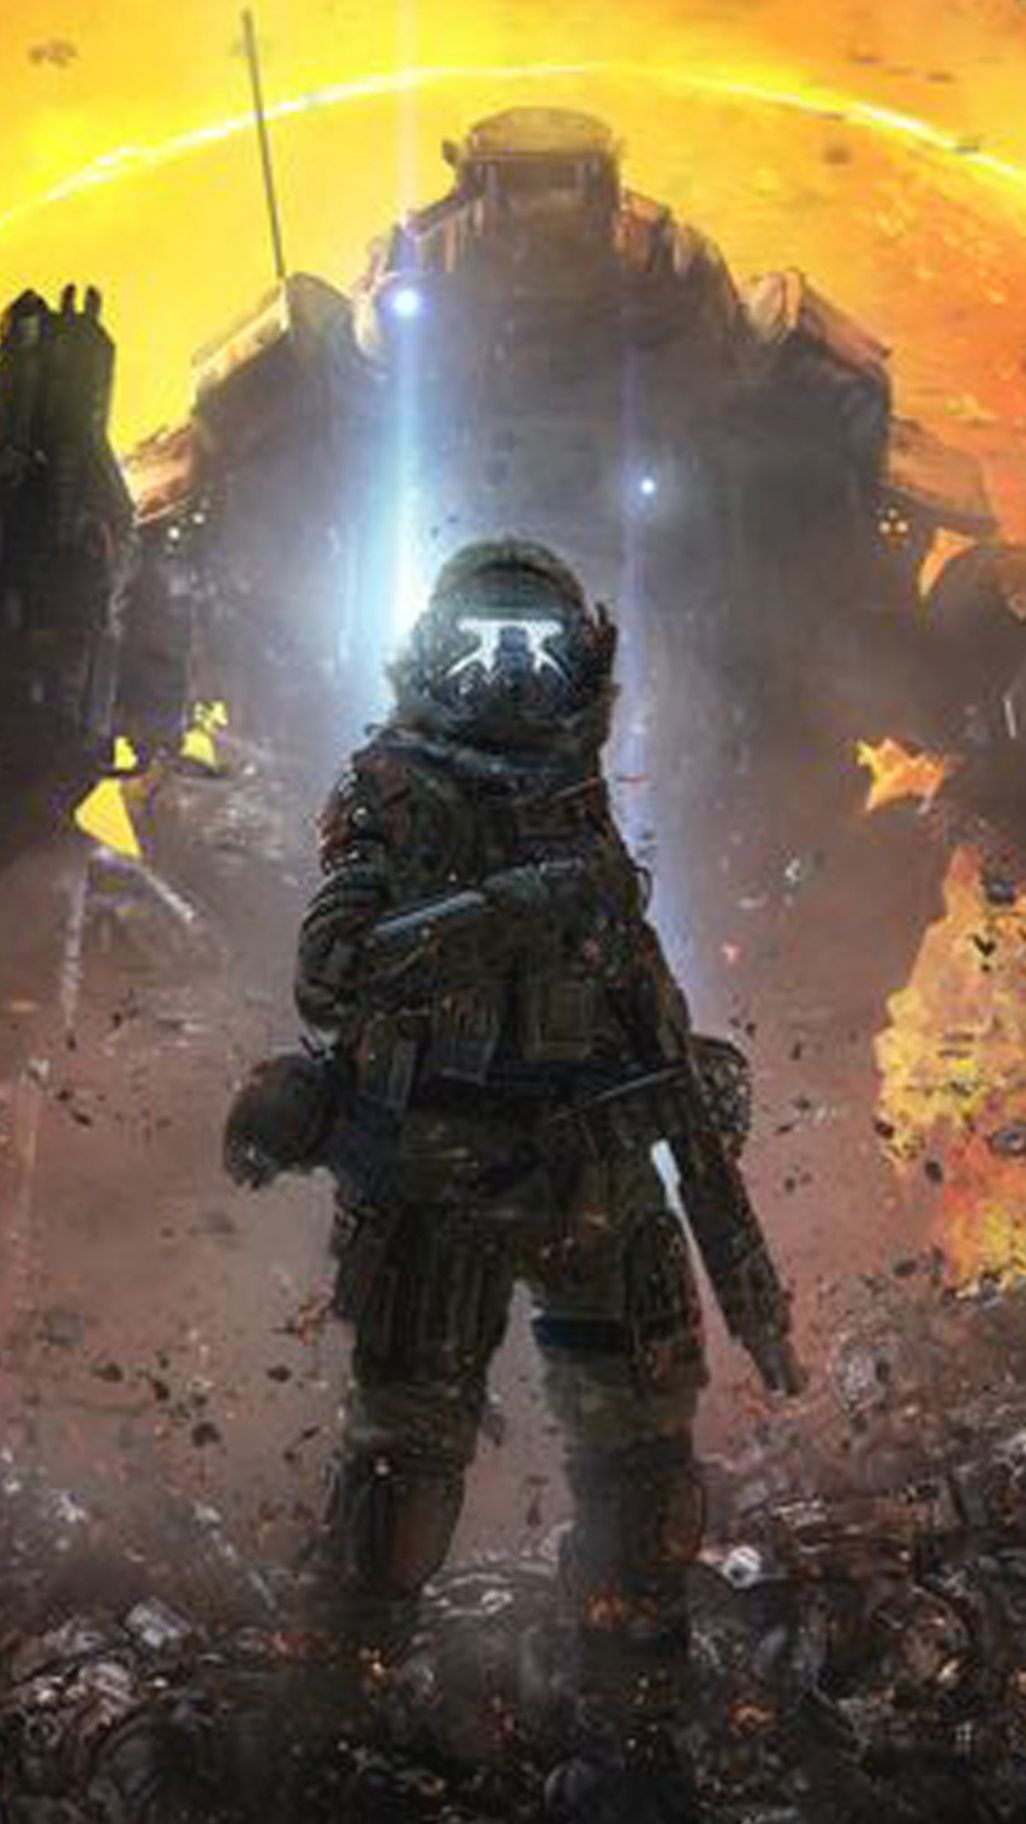 Titanfall 2 Iphone 6 Wallpaper Reddit | Iphone wallru